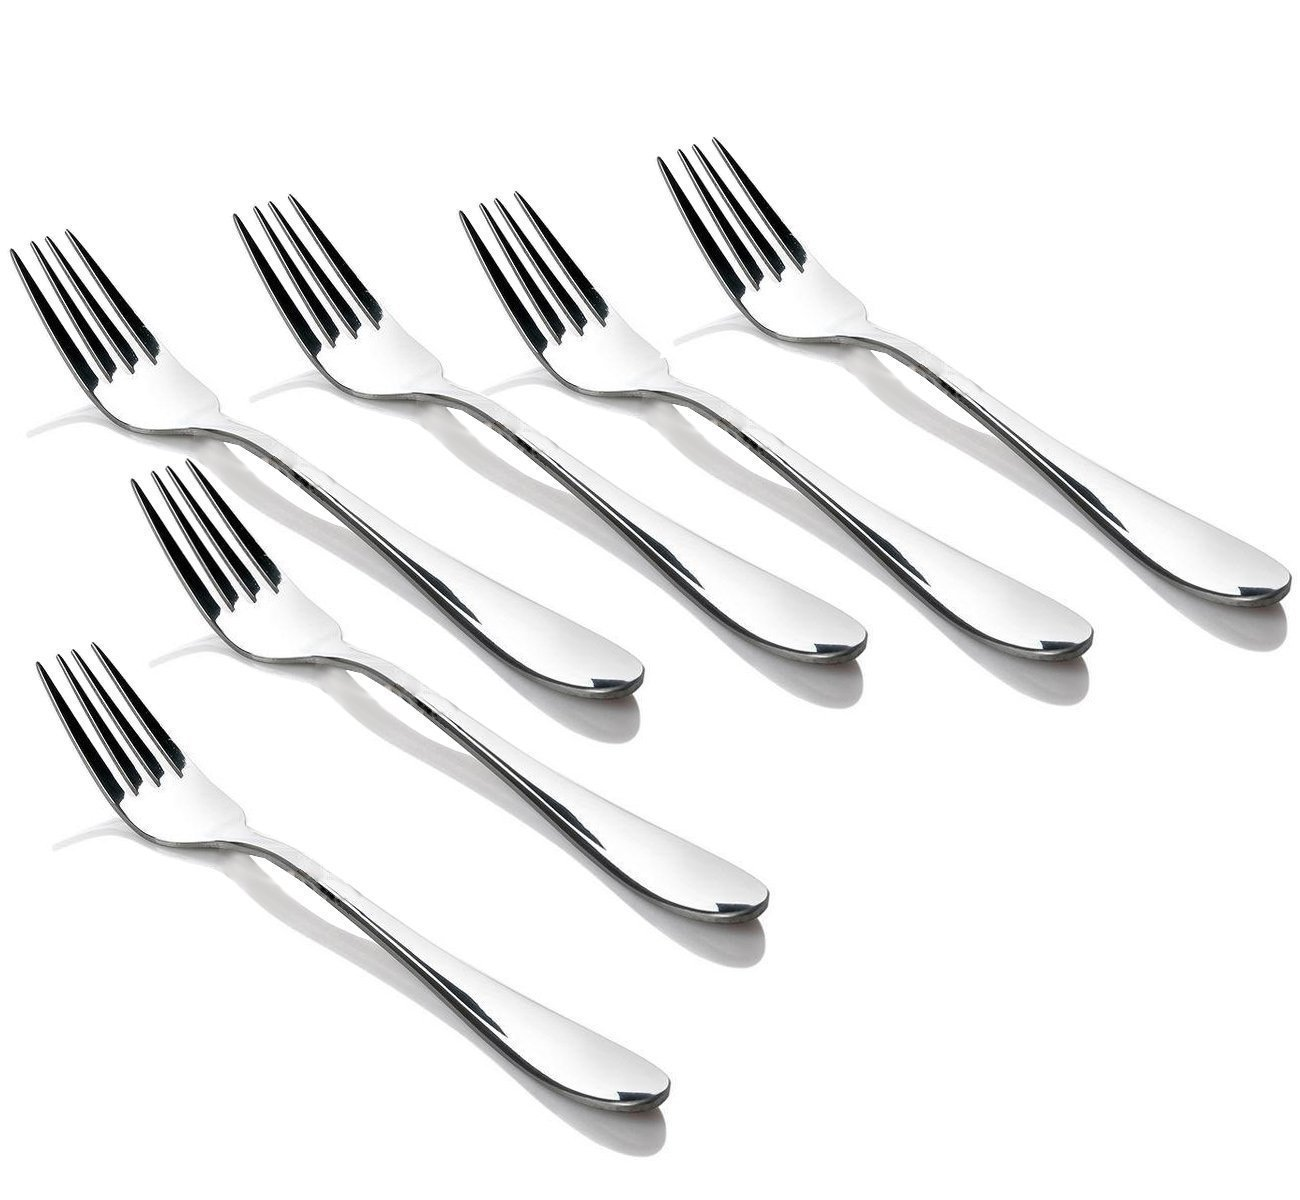 Stainless Steel Cutlery Small Fork set of 6